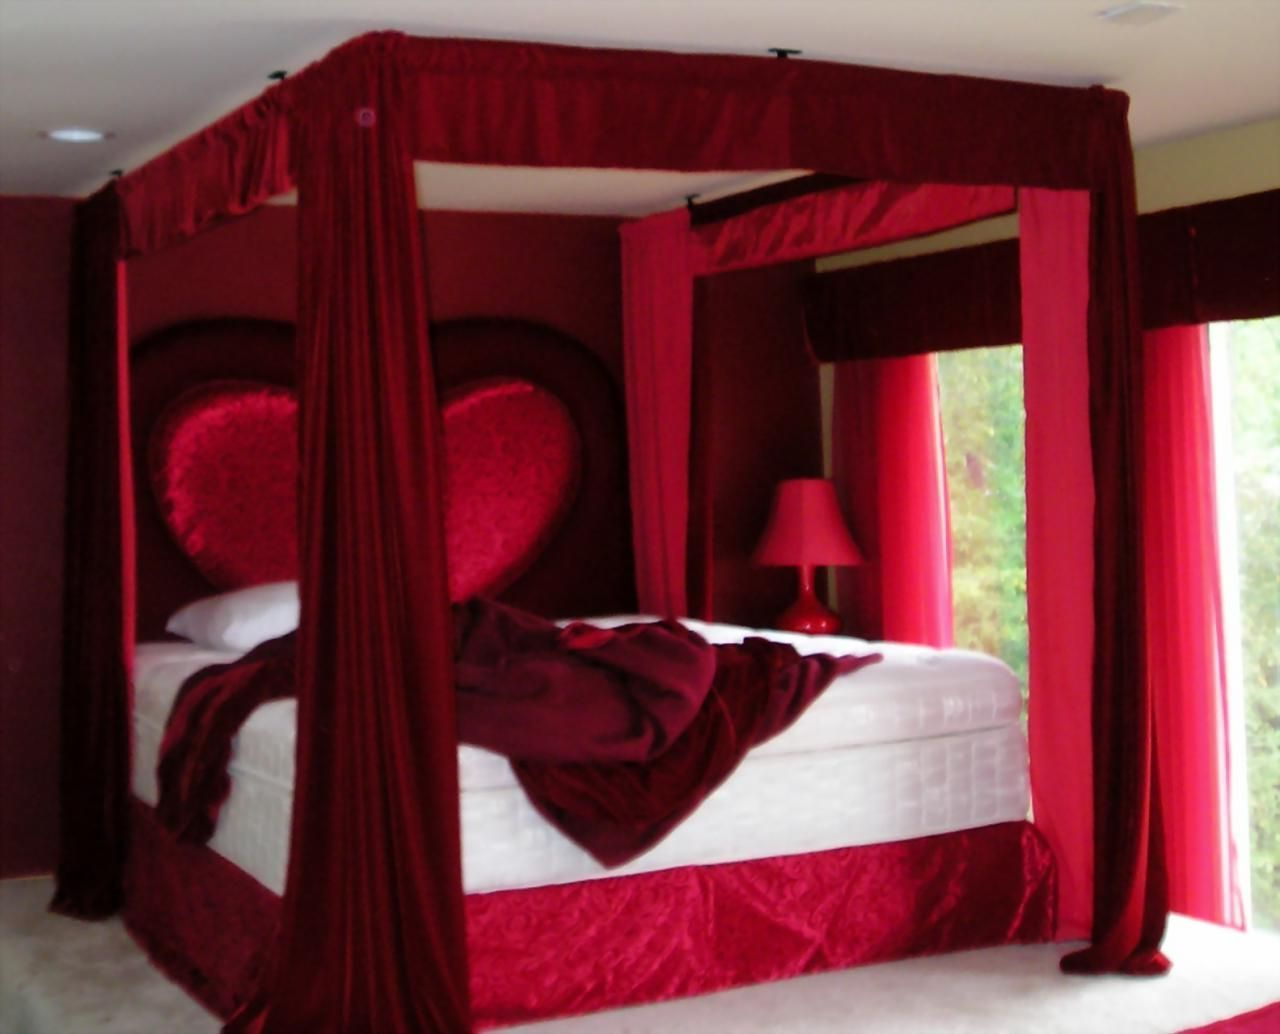 Bed Room  Lovable Bedroom Ideas For Couple With Fascinating Red Canopy  Above Stunning Glazing Window Interesting Headboard Marvelous Lamp Side   Comfortable. Bedroom   Powerful Bedroom Design Ideas in Red Color Choices